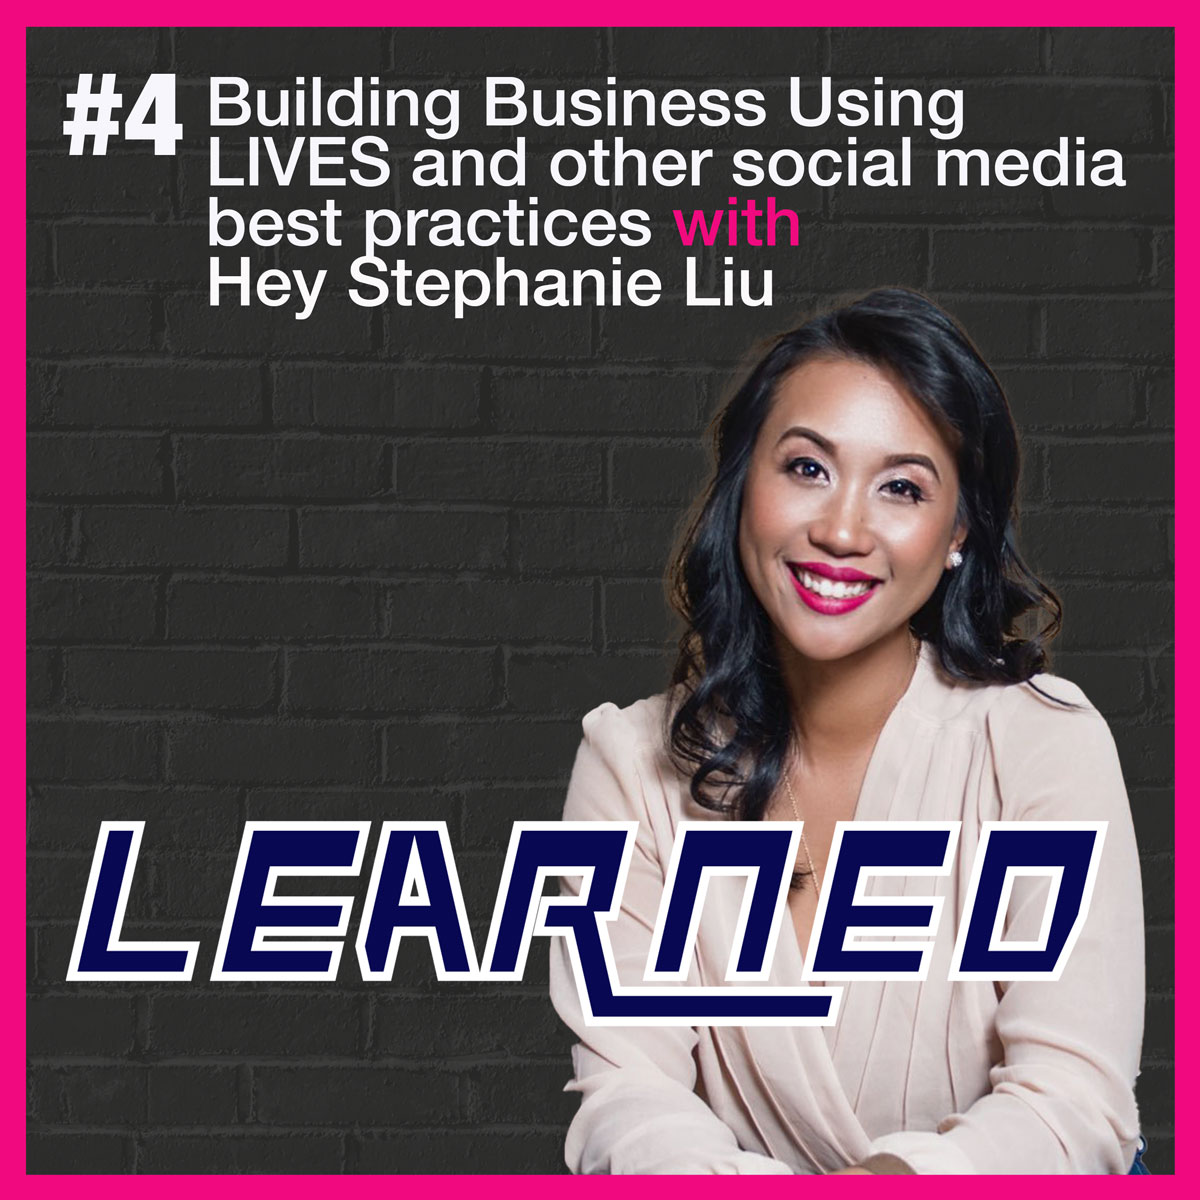 Depending on your podcast platform, here are a few links.  TGIF!  New Episode with the amazing @heystephanie  Such a great role model for anyone starting a business, live streaming video and social media!  #thelearnedpodcast   @SquadCastFM @Simplecast